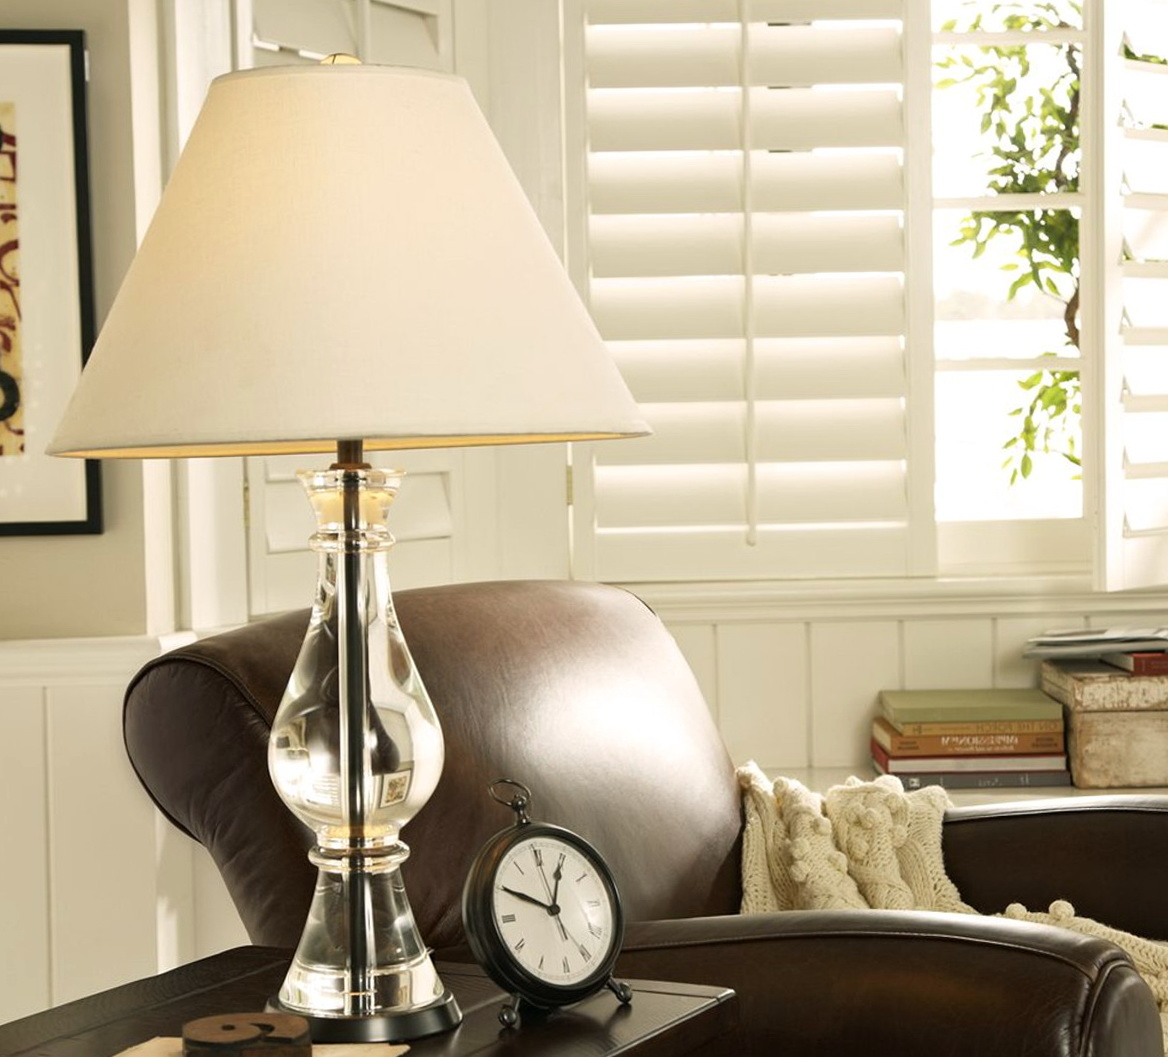 Pottery Barn Bellora Chandelier Reviews: Pottery Barn Chandelier Table Lamp